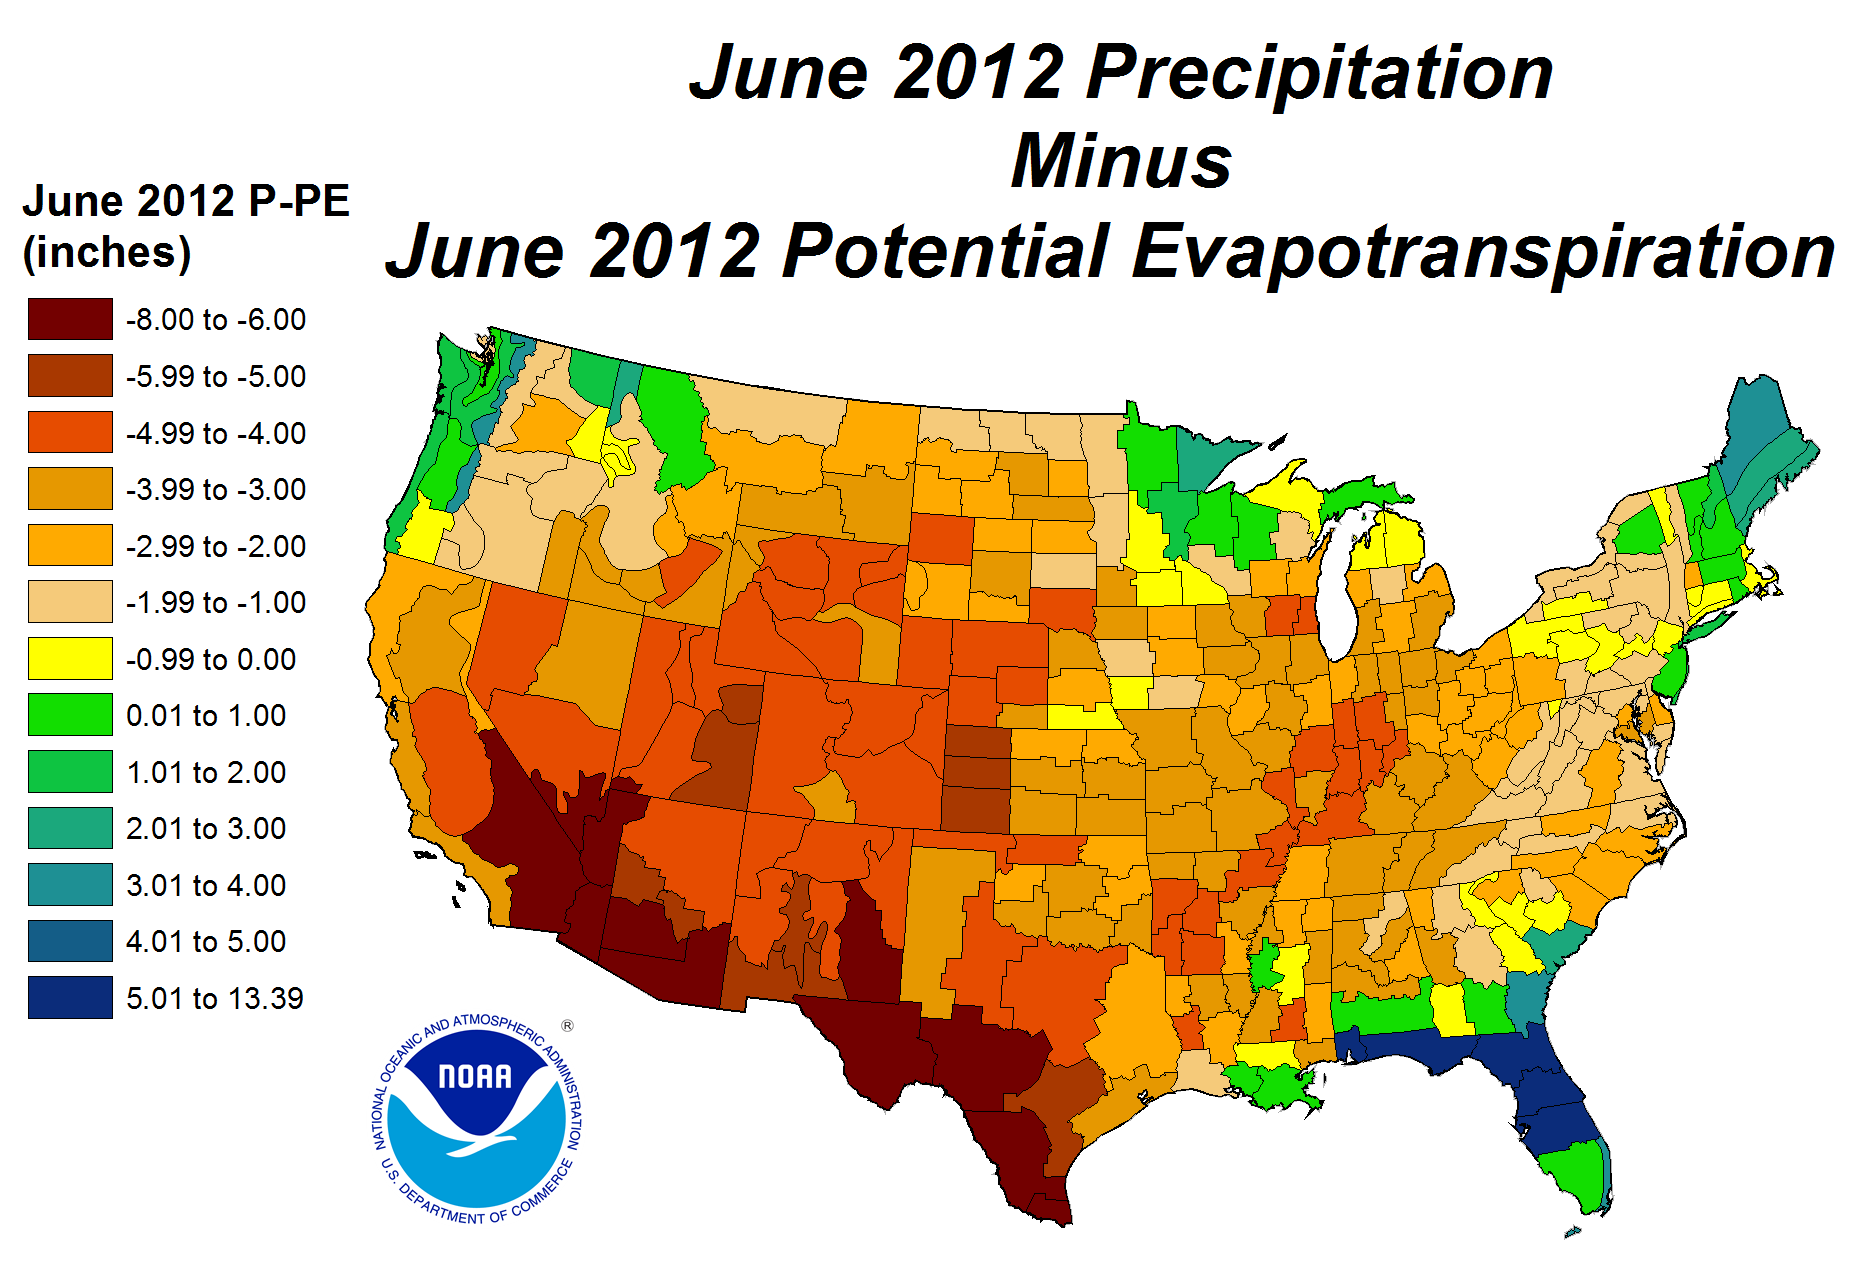 June 2012 Precipitation minus Potential Evapotranspiration map